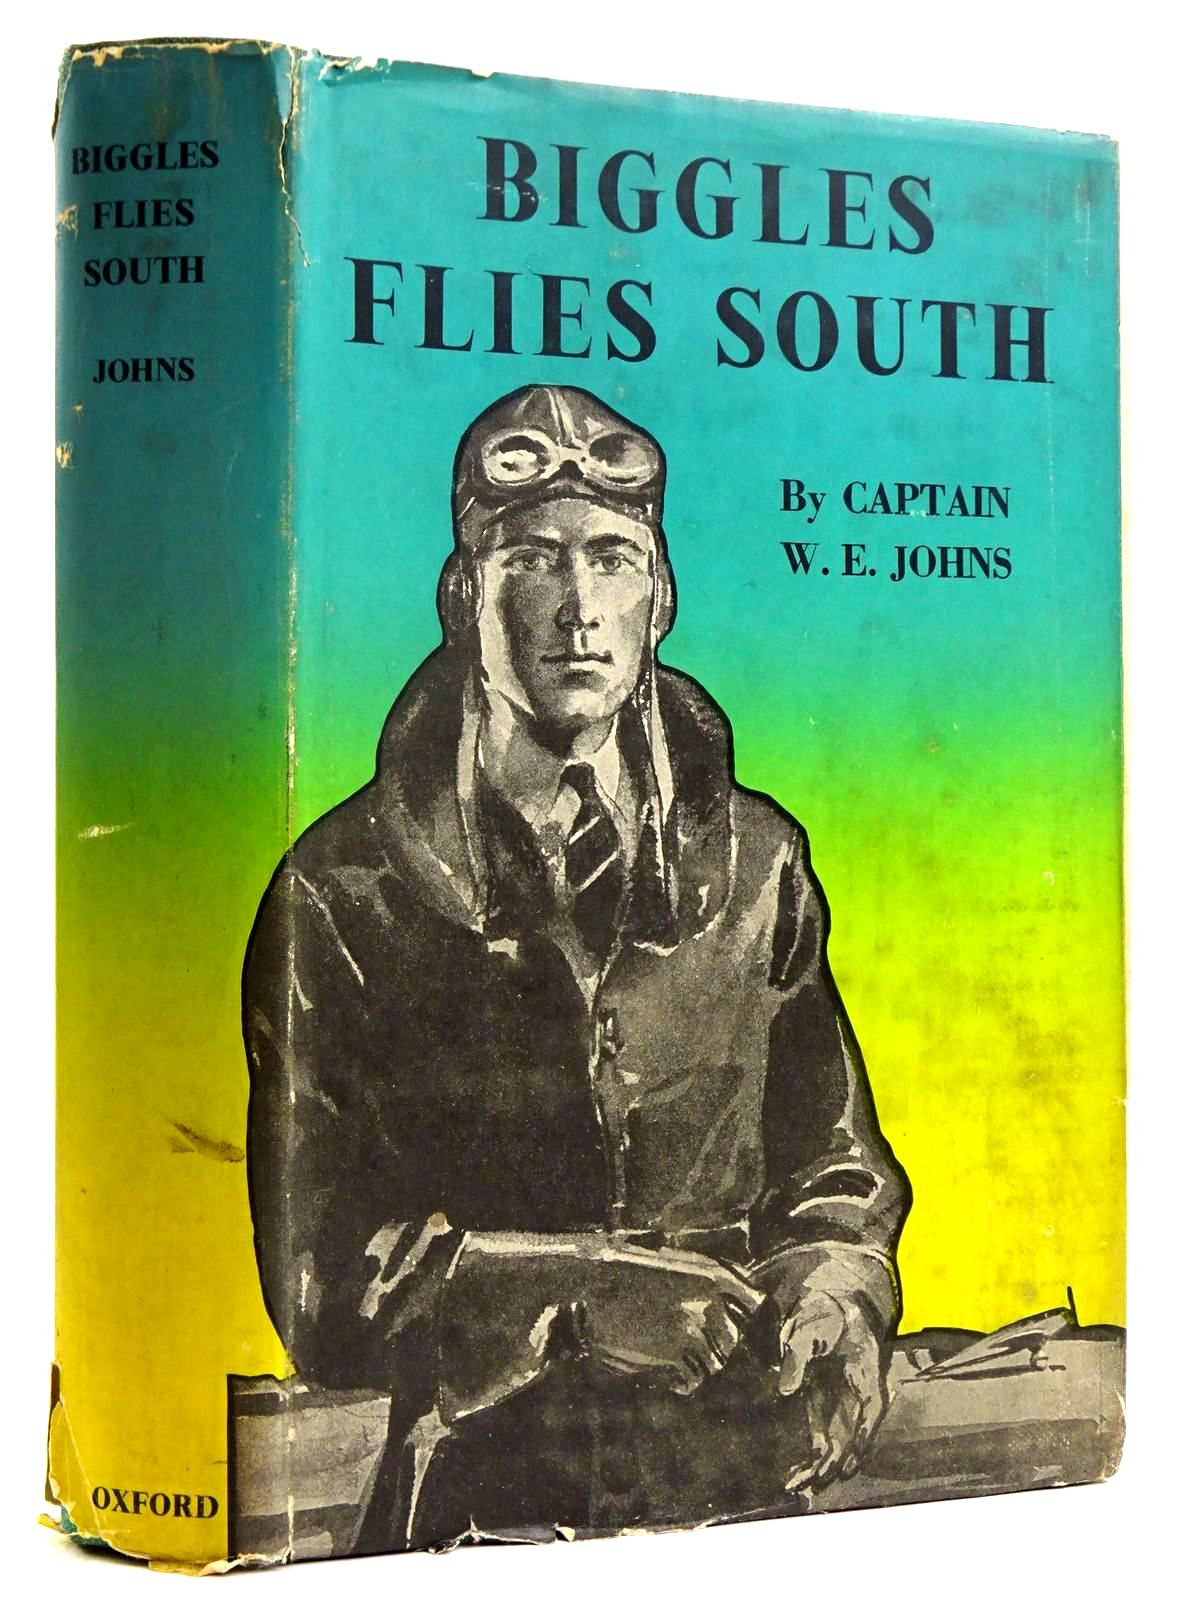 Photo of BIGGLES FLIES SOUTH written by Johns, W.E. illustrated by Nicolle, Jack published by Geoffrey Cumberlege, Oxford University Press (STOCK CODE: 2131737)  for sale by Stella & Rose's Books